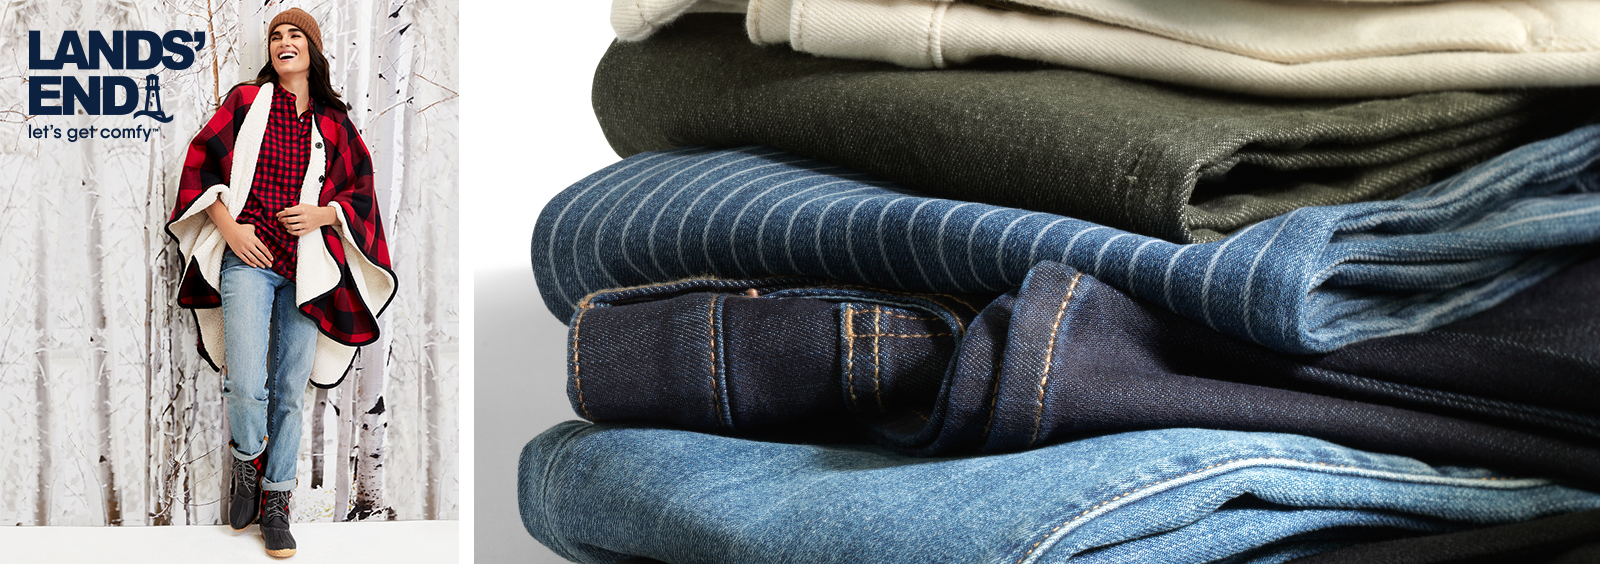 How to Cuff Your Jeans the Right Way